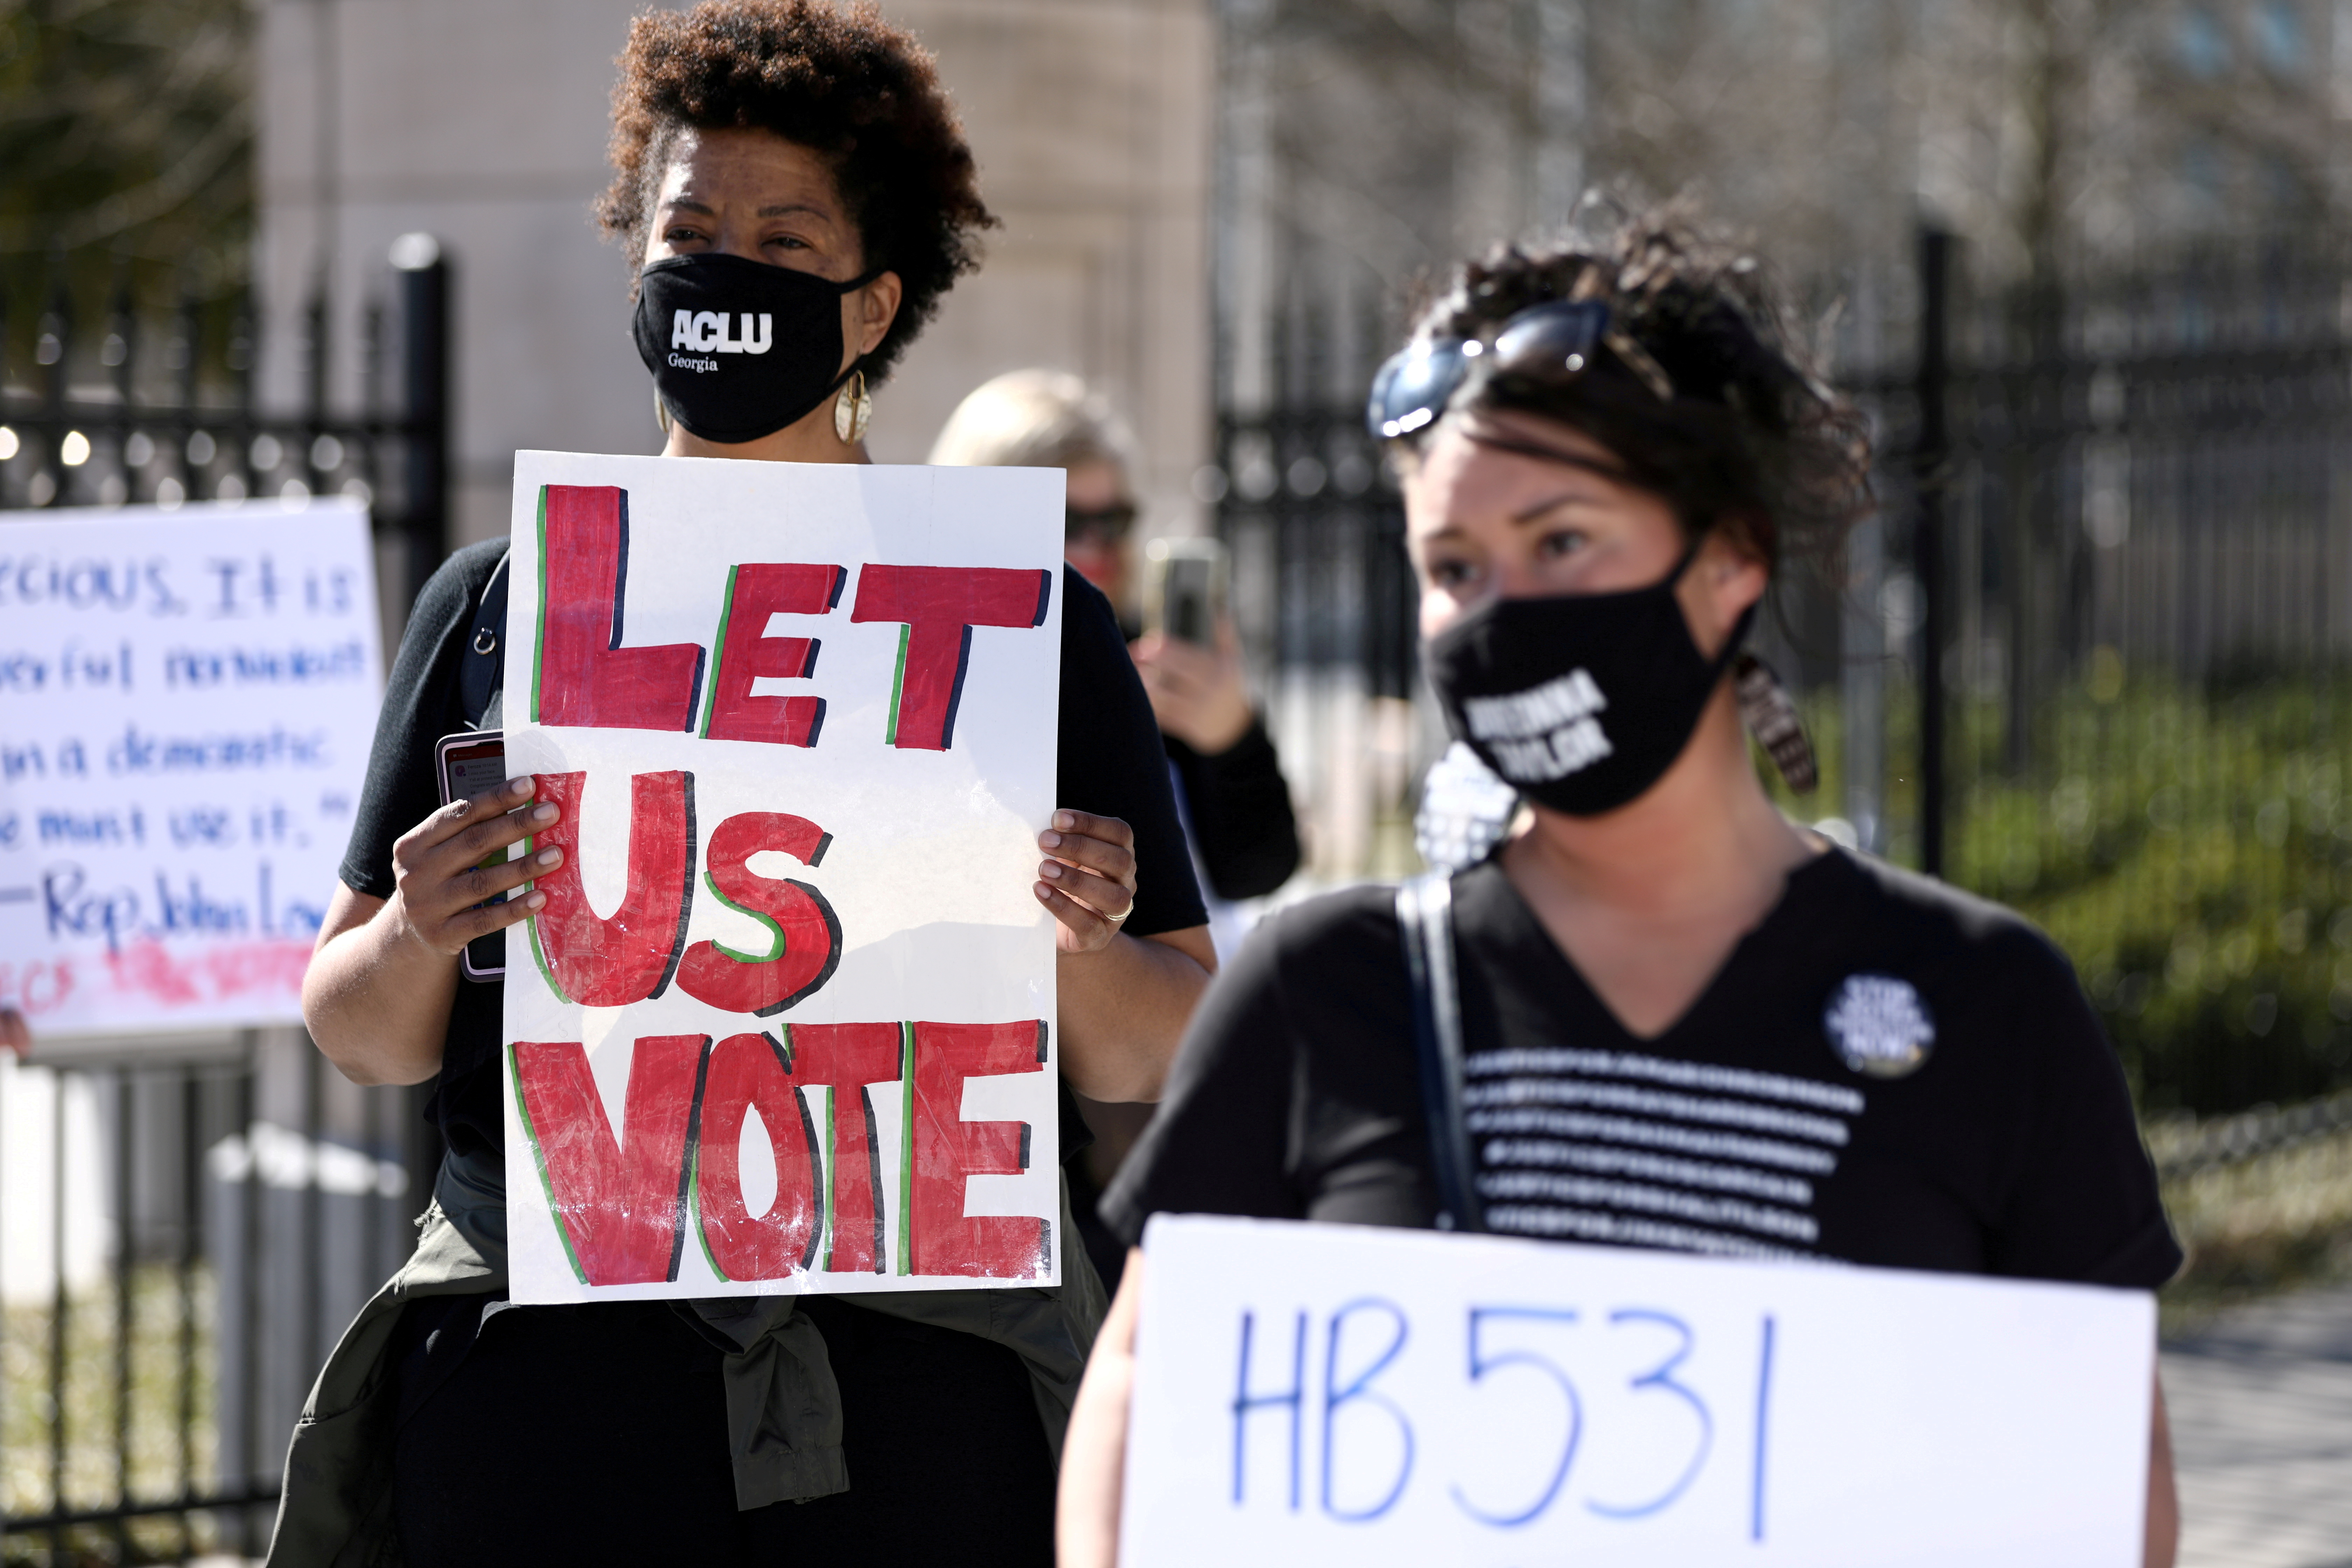 Protesters gather outside of the Georgia State Capitol to protest HB 531, which would place tougher restrictions on voting in Georgia, in Atlanta, Georgia, U.S. March 4, 2021. REUTERS/Dustin Chambers/File Photo/File Photo/File Photo